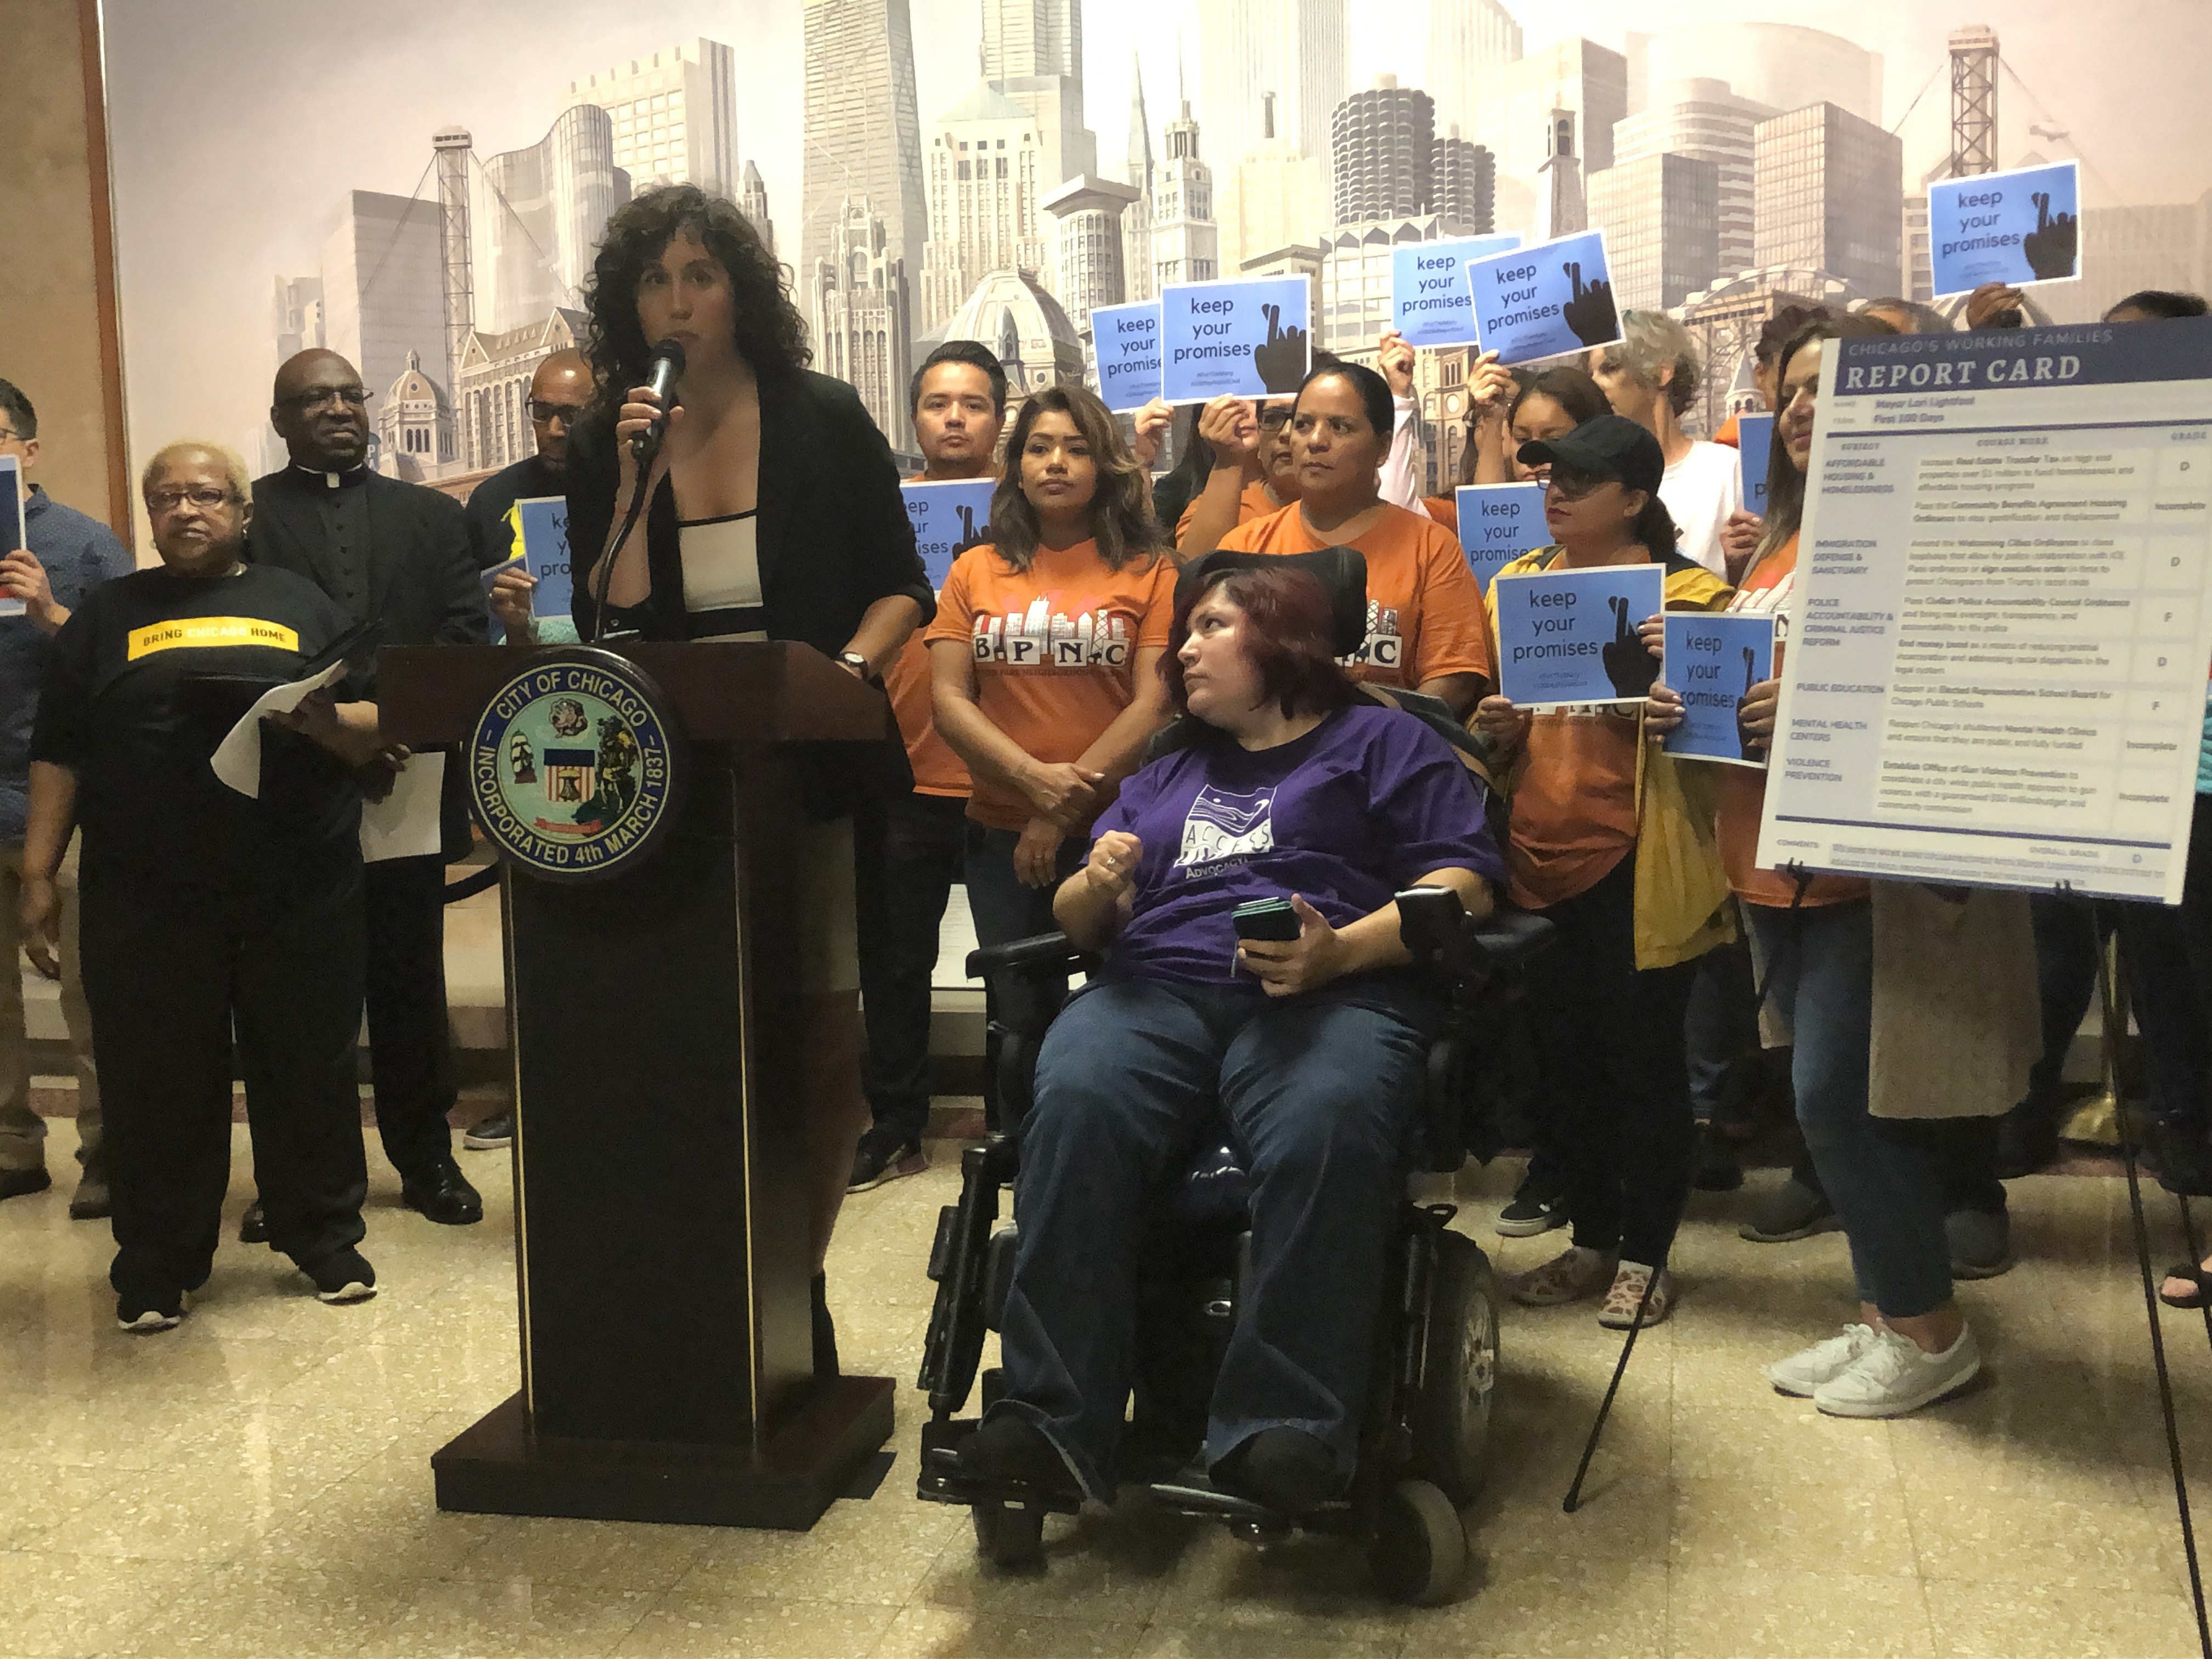 Emma Tai (left) and Michelle Garcia, from Access Living, stand with other community activists at City Hall to issue their report card for Mayor Lori Lightfoot's first 100 days in office.